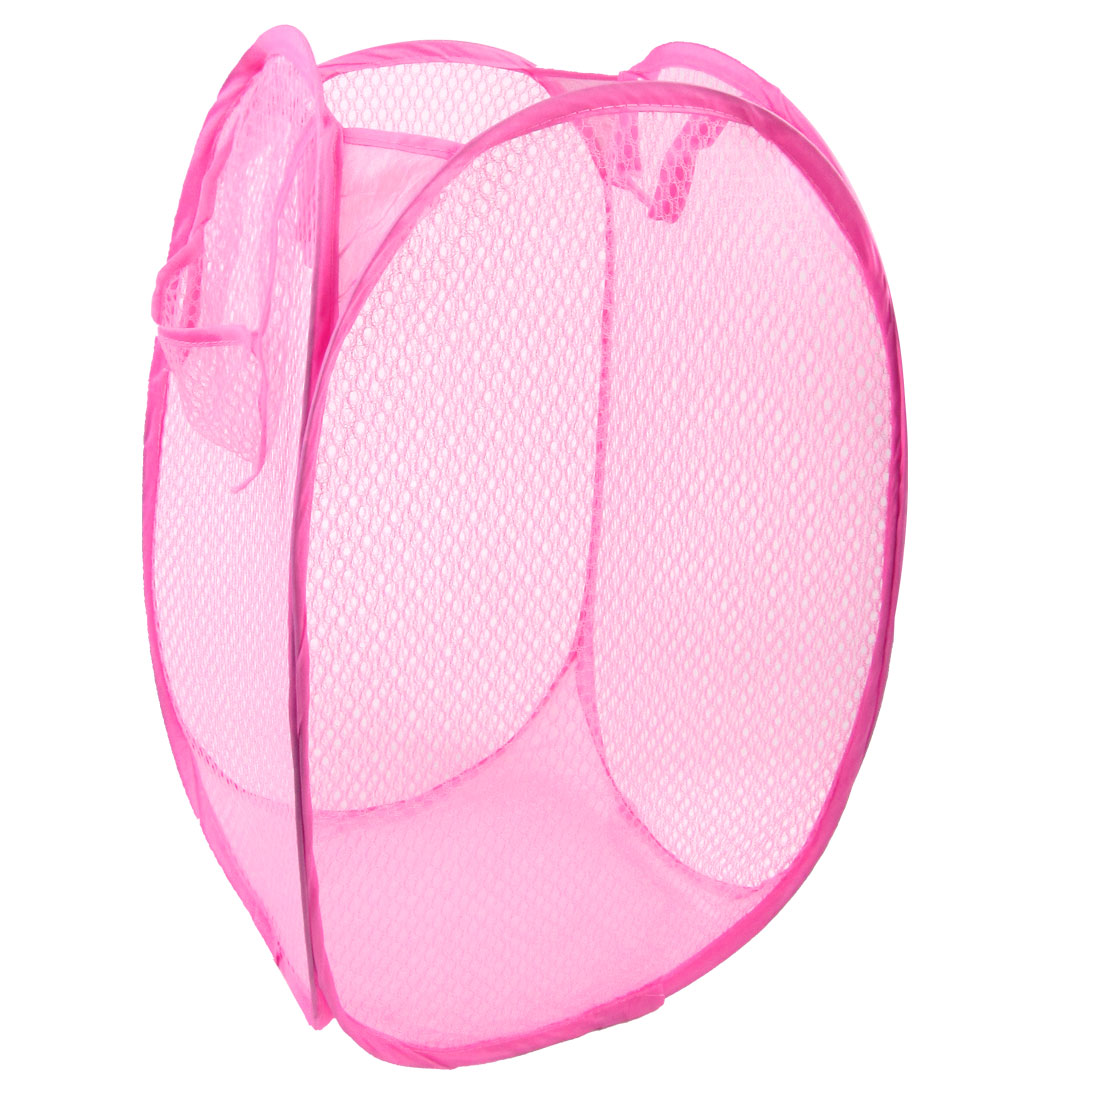 Home Laundry Foldable Mesh Nylon Underwear Clothing Washing Bag Pink